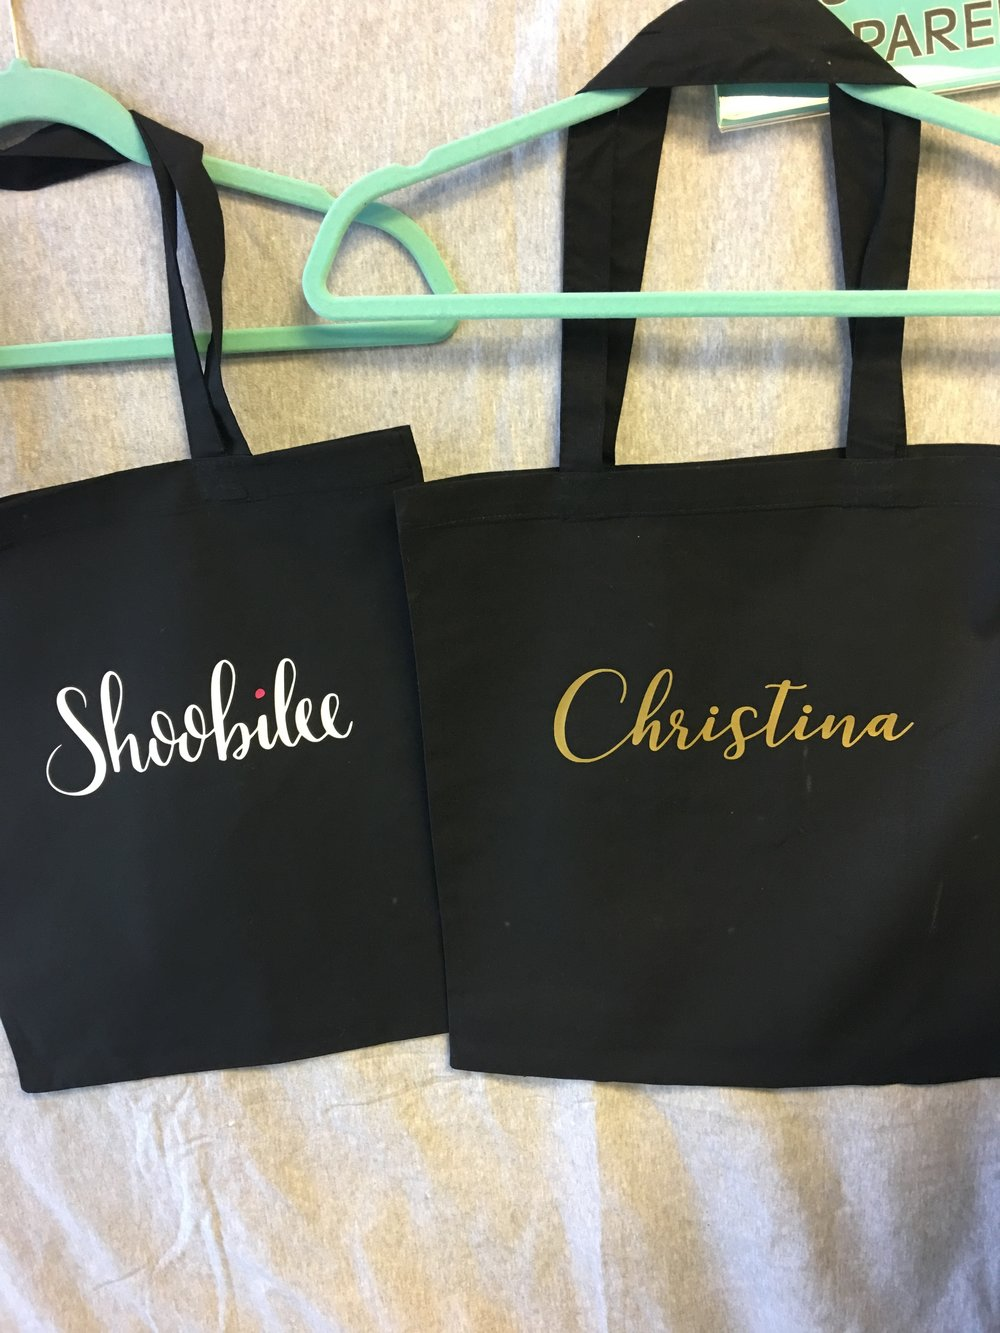 Custom company tote bags for Shobilee